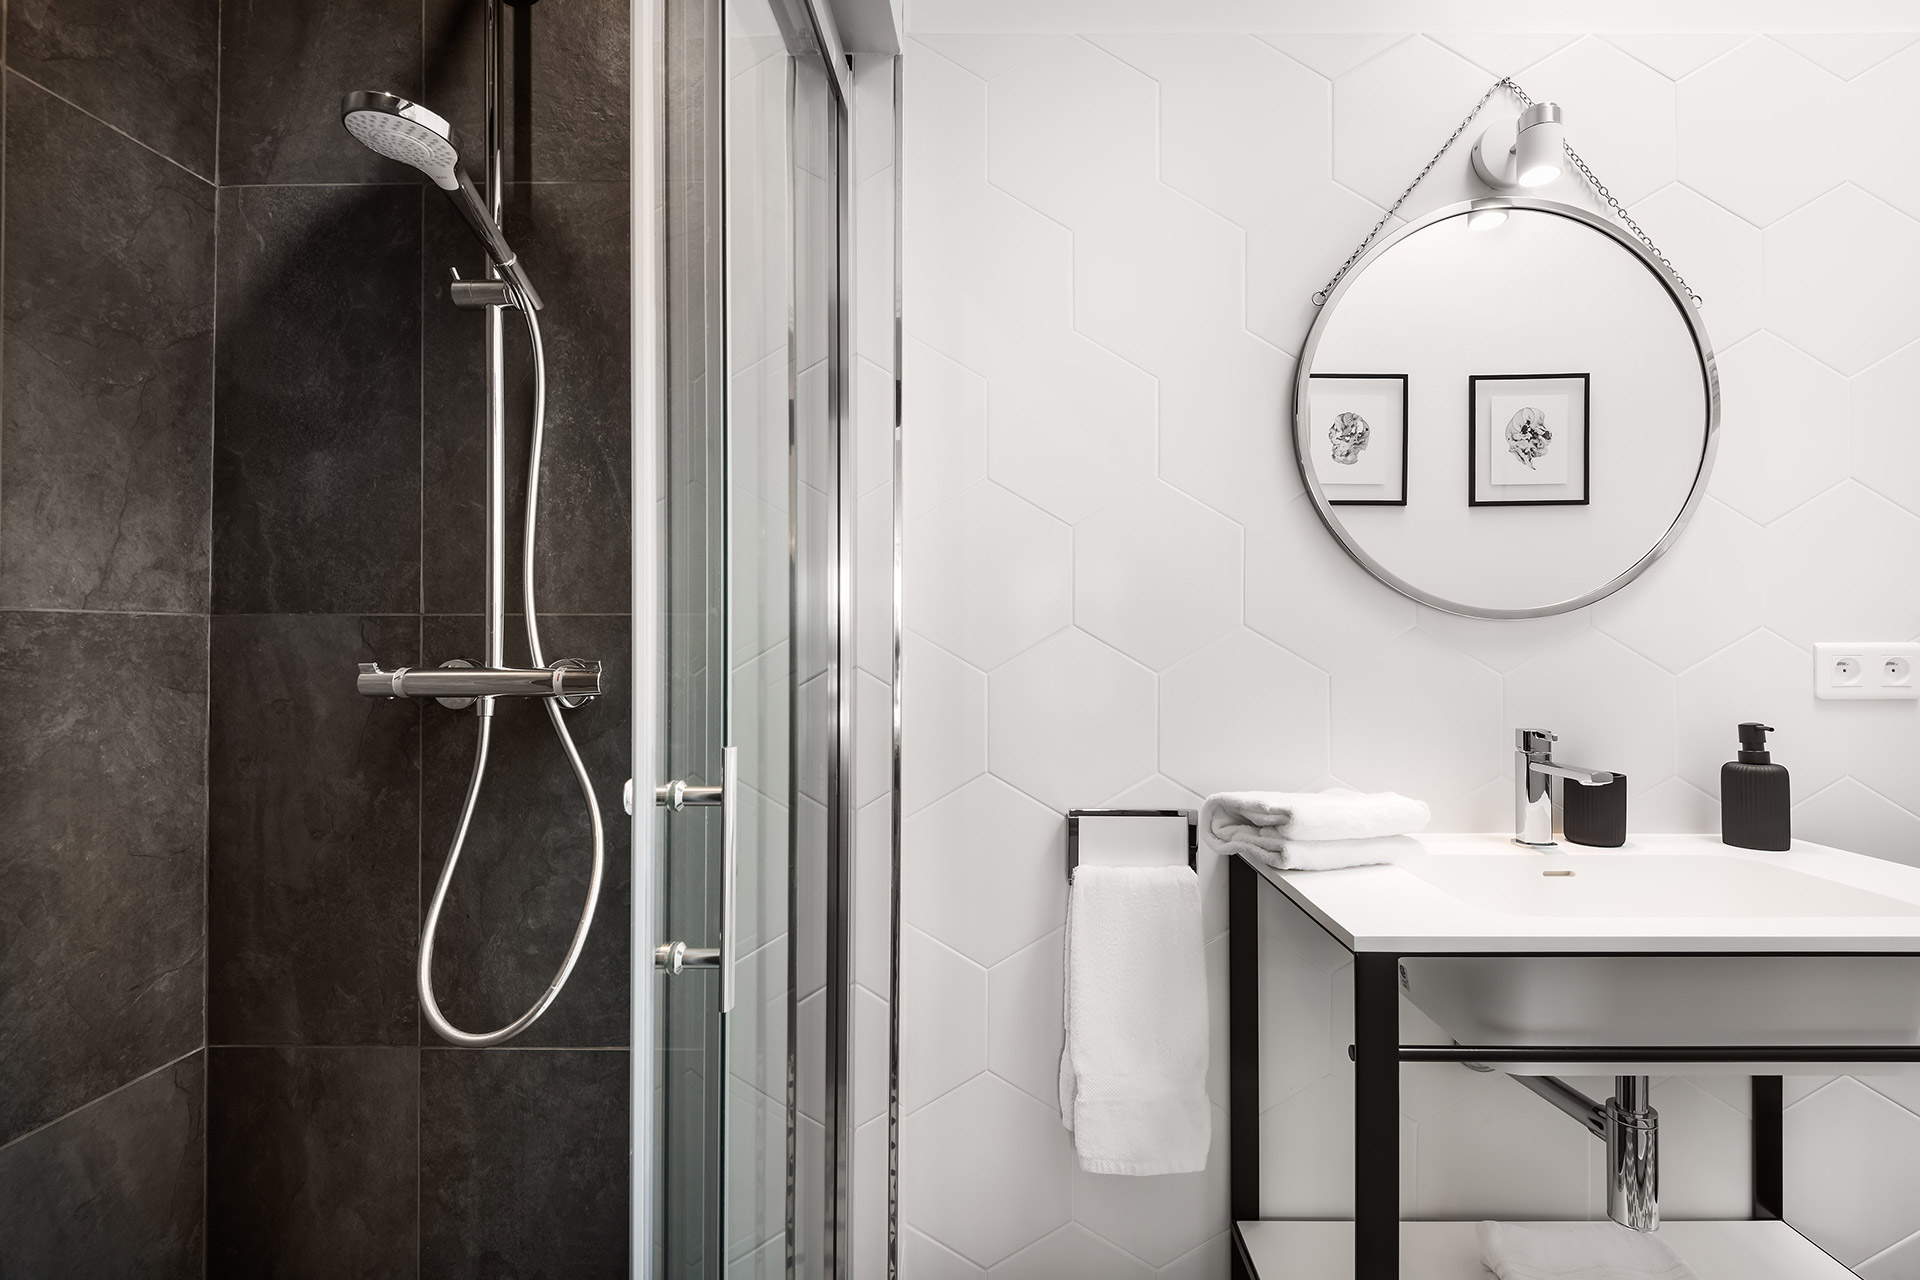 High-end bathroom 3 in the Chevalier vacation rental by Paris Perfect